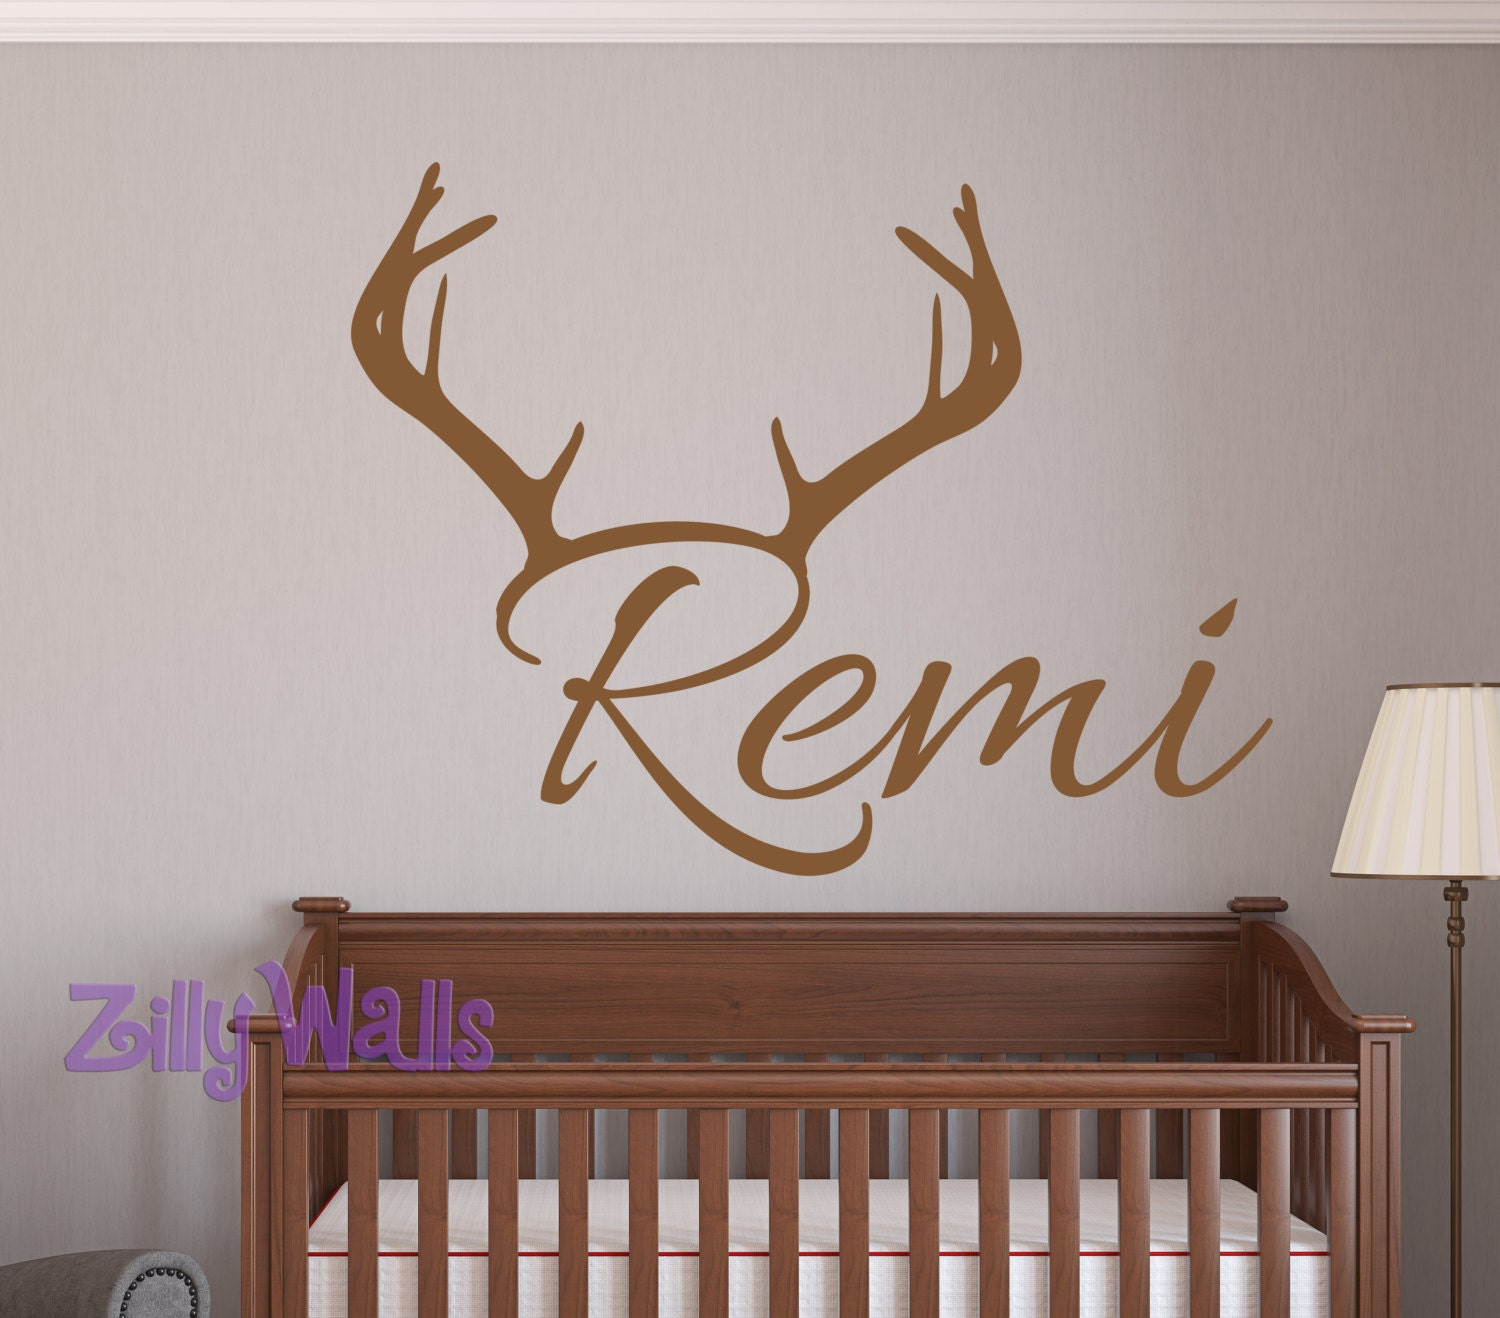 Name wall decal kids wall decals deer wall stickers for Deer wall decals